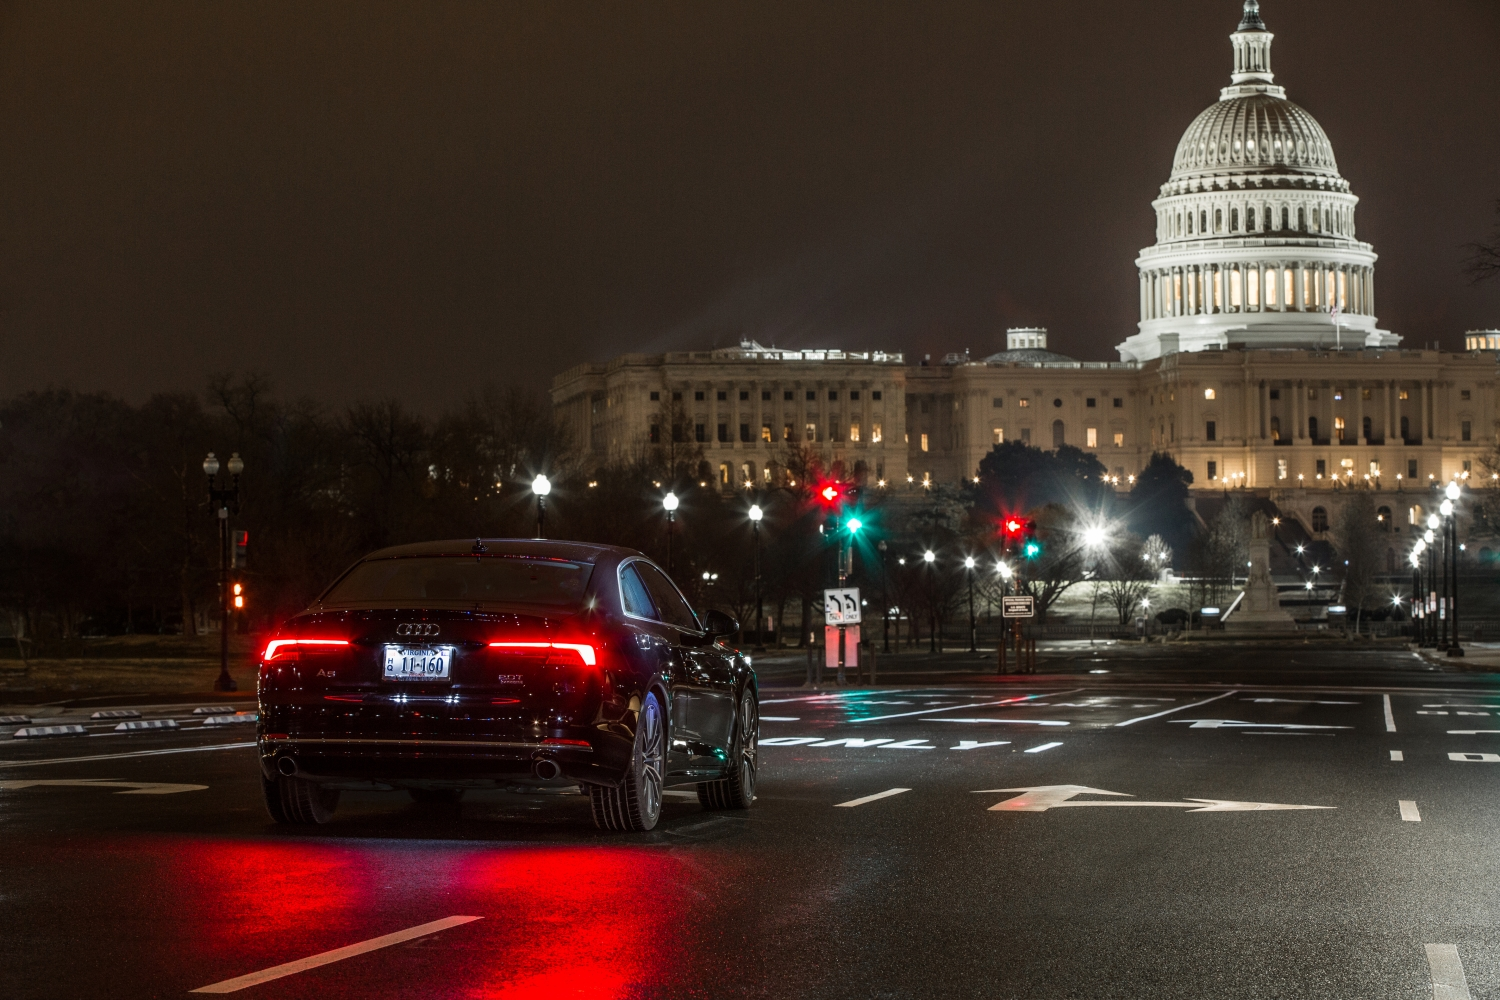 The traffic signals in Washington, DC, can now talk to your car—if it's an Audi | Ars Technica